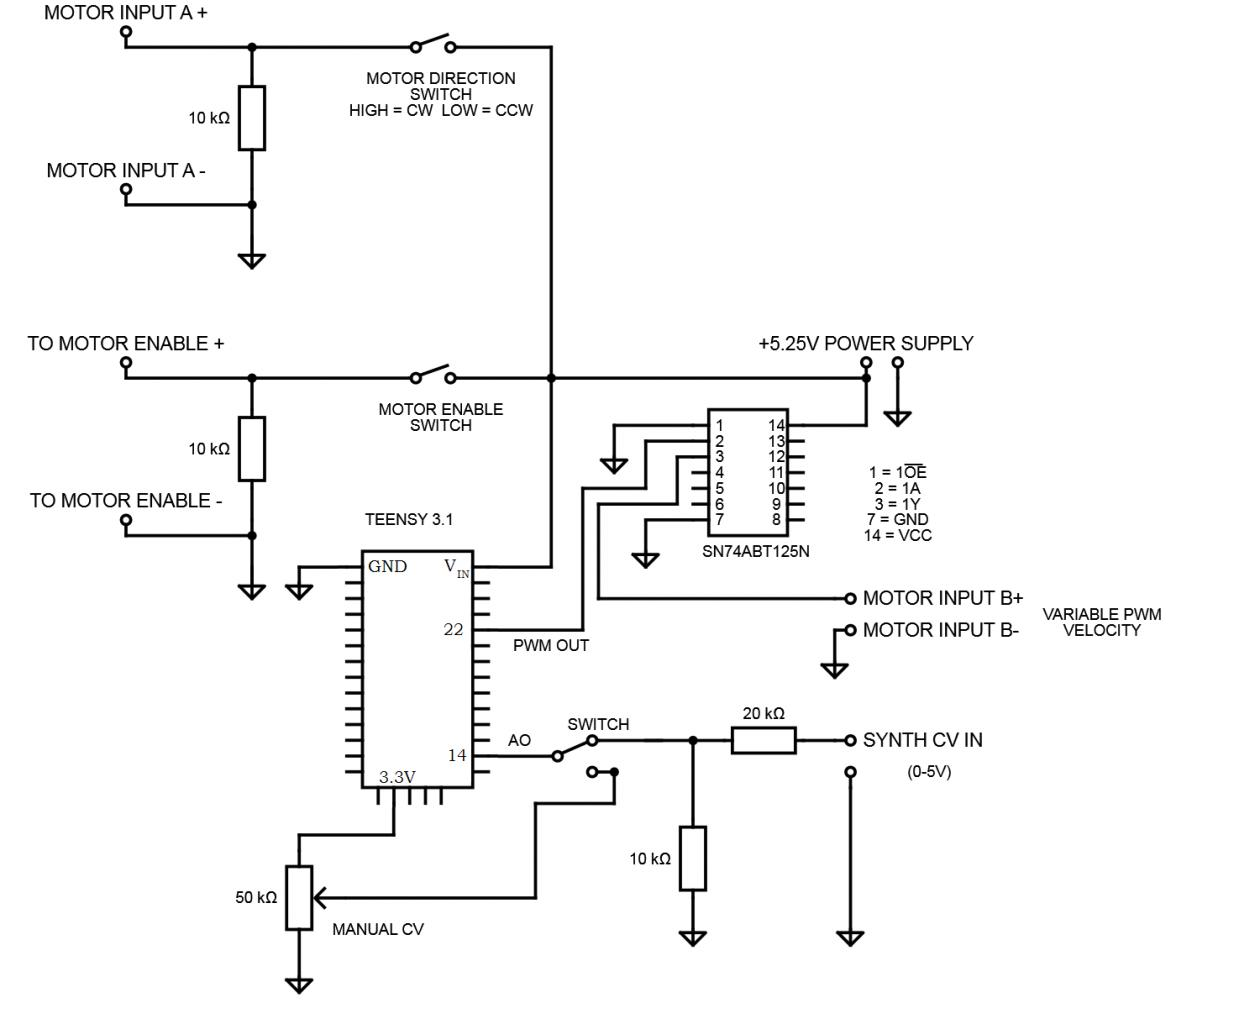 Ogo Pwm Wiring Diagram 7 Free For You Darlington Pair To Drive Dc Motor Schematic Hvac Diagrams Elsalvadorla